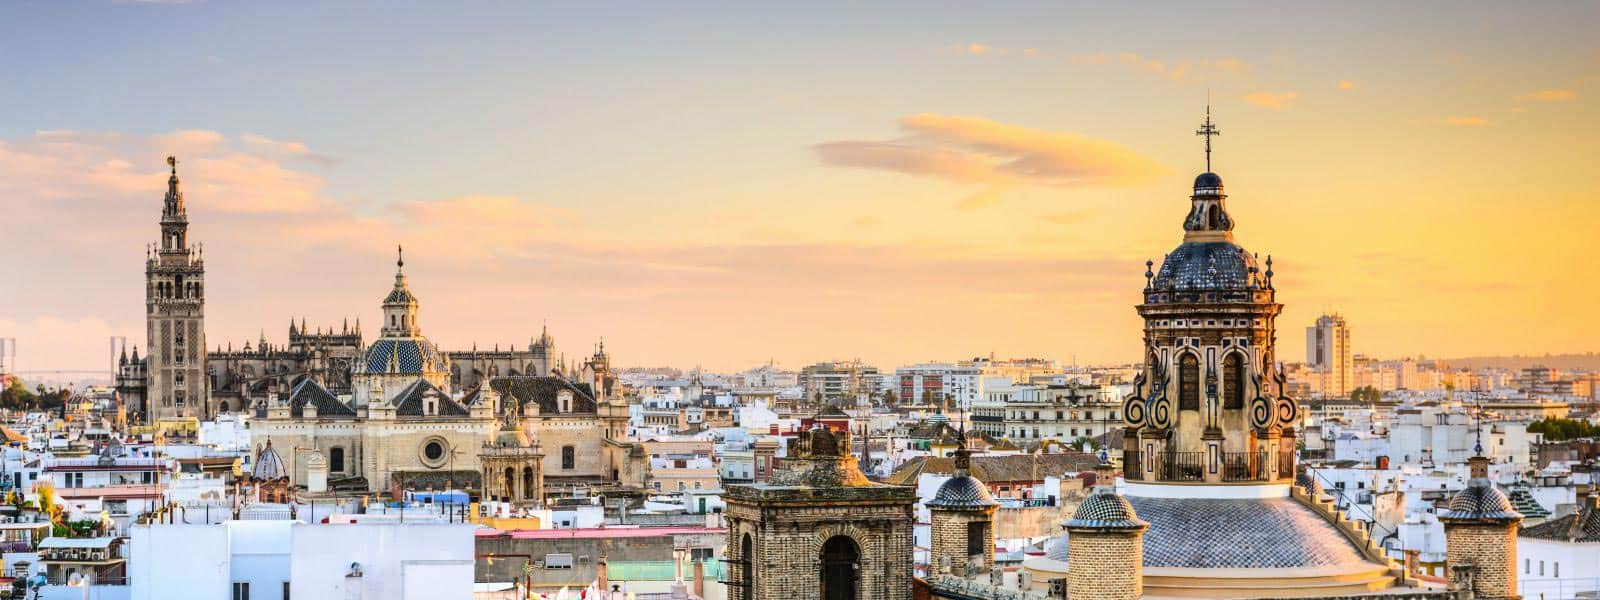 LUXURY DMC AND MICE CONSULTANT IN SEVILLE